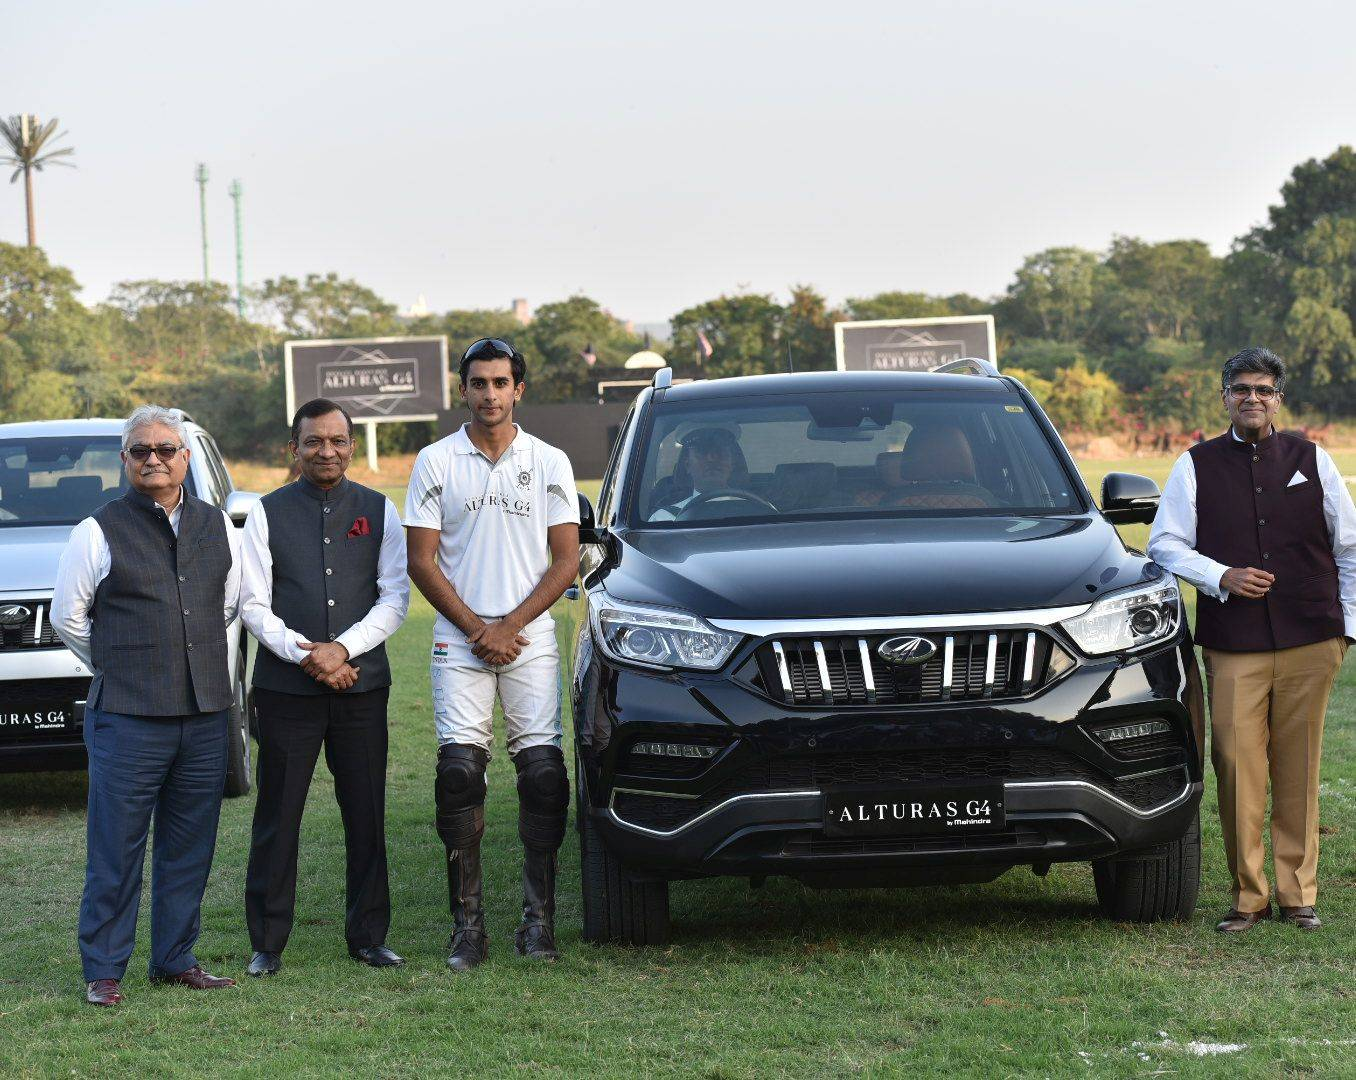 mahindra alturas: no ssangyong branded products coming to india: m&m